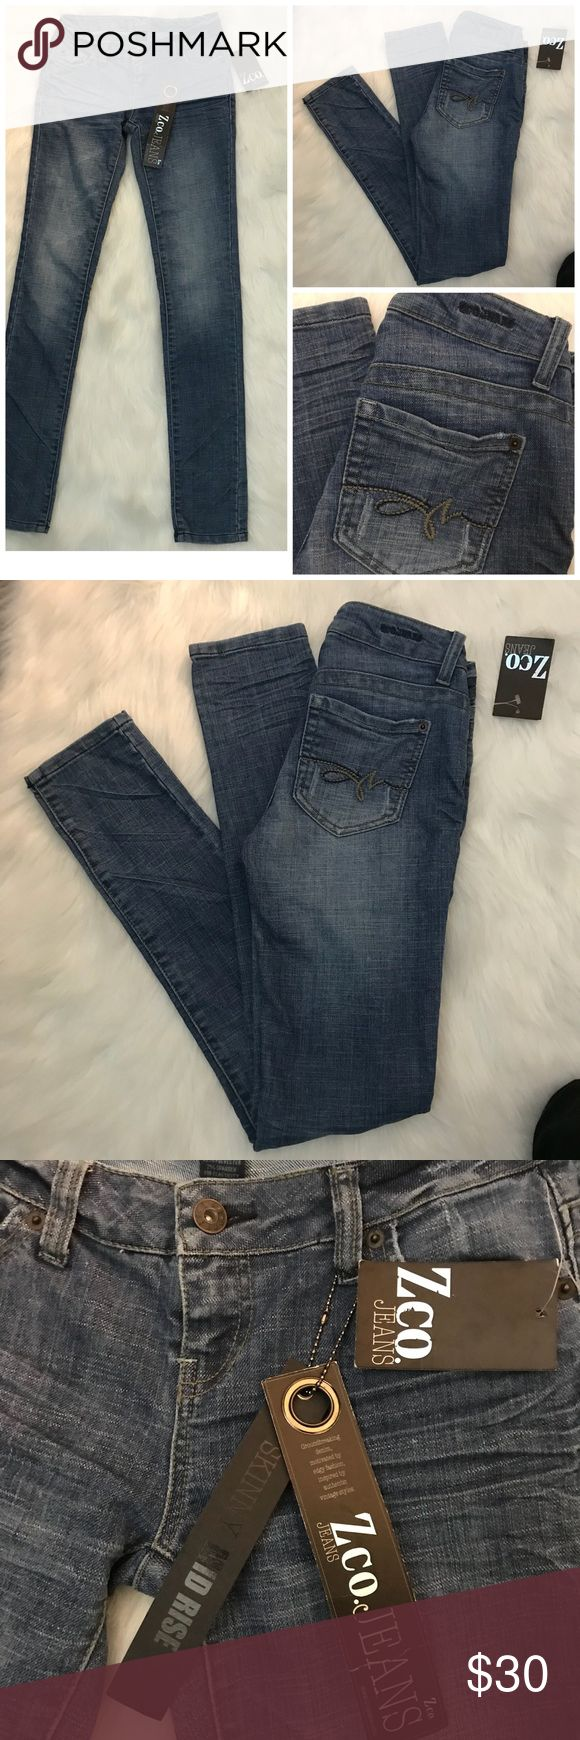 """NWT ZCO Size 1 Misses skinner Jeans. Very cute! Super Chic! Get styled with theses Misses ZCO Jeans size 1. Waist 13"""" inseam 31"""" Rise 7"""" Measurements are Approximate.  All reasonable  offers  considered. Let's make a deal today! I ZCO Jeans Skinny"""